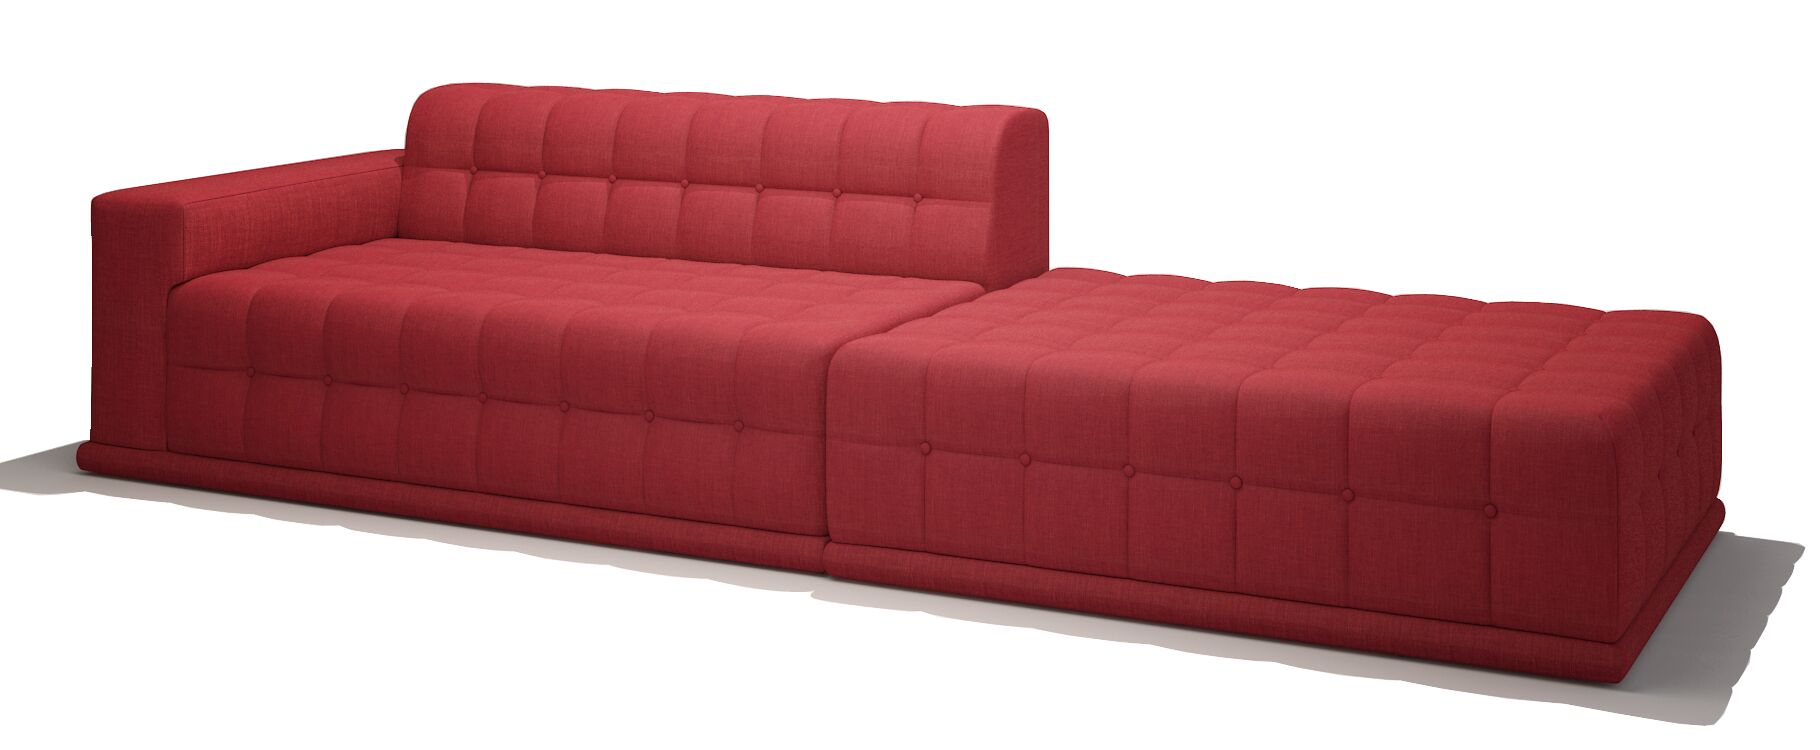 Bump Bump One Arm Sectional Sectional Orientation: Left Hand Facing, Body Fabric: Marlow Toast